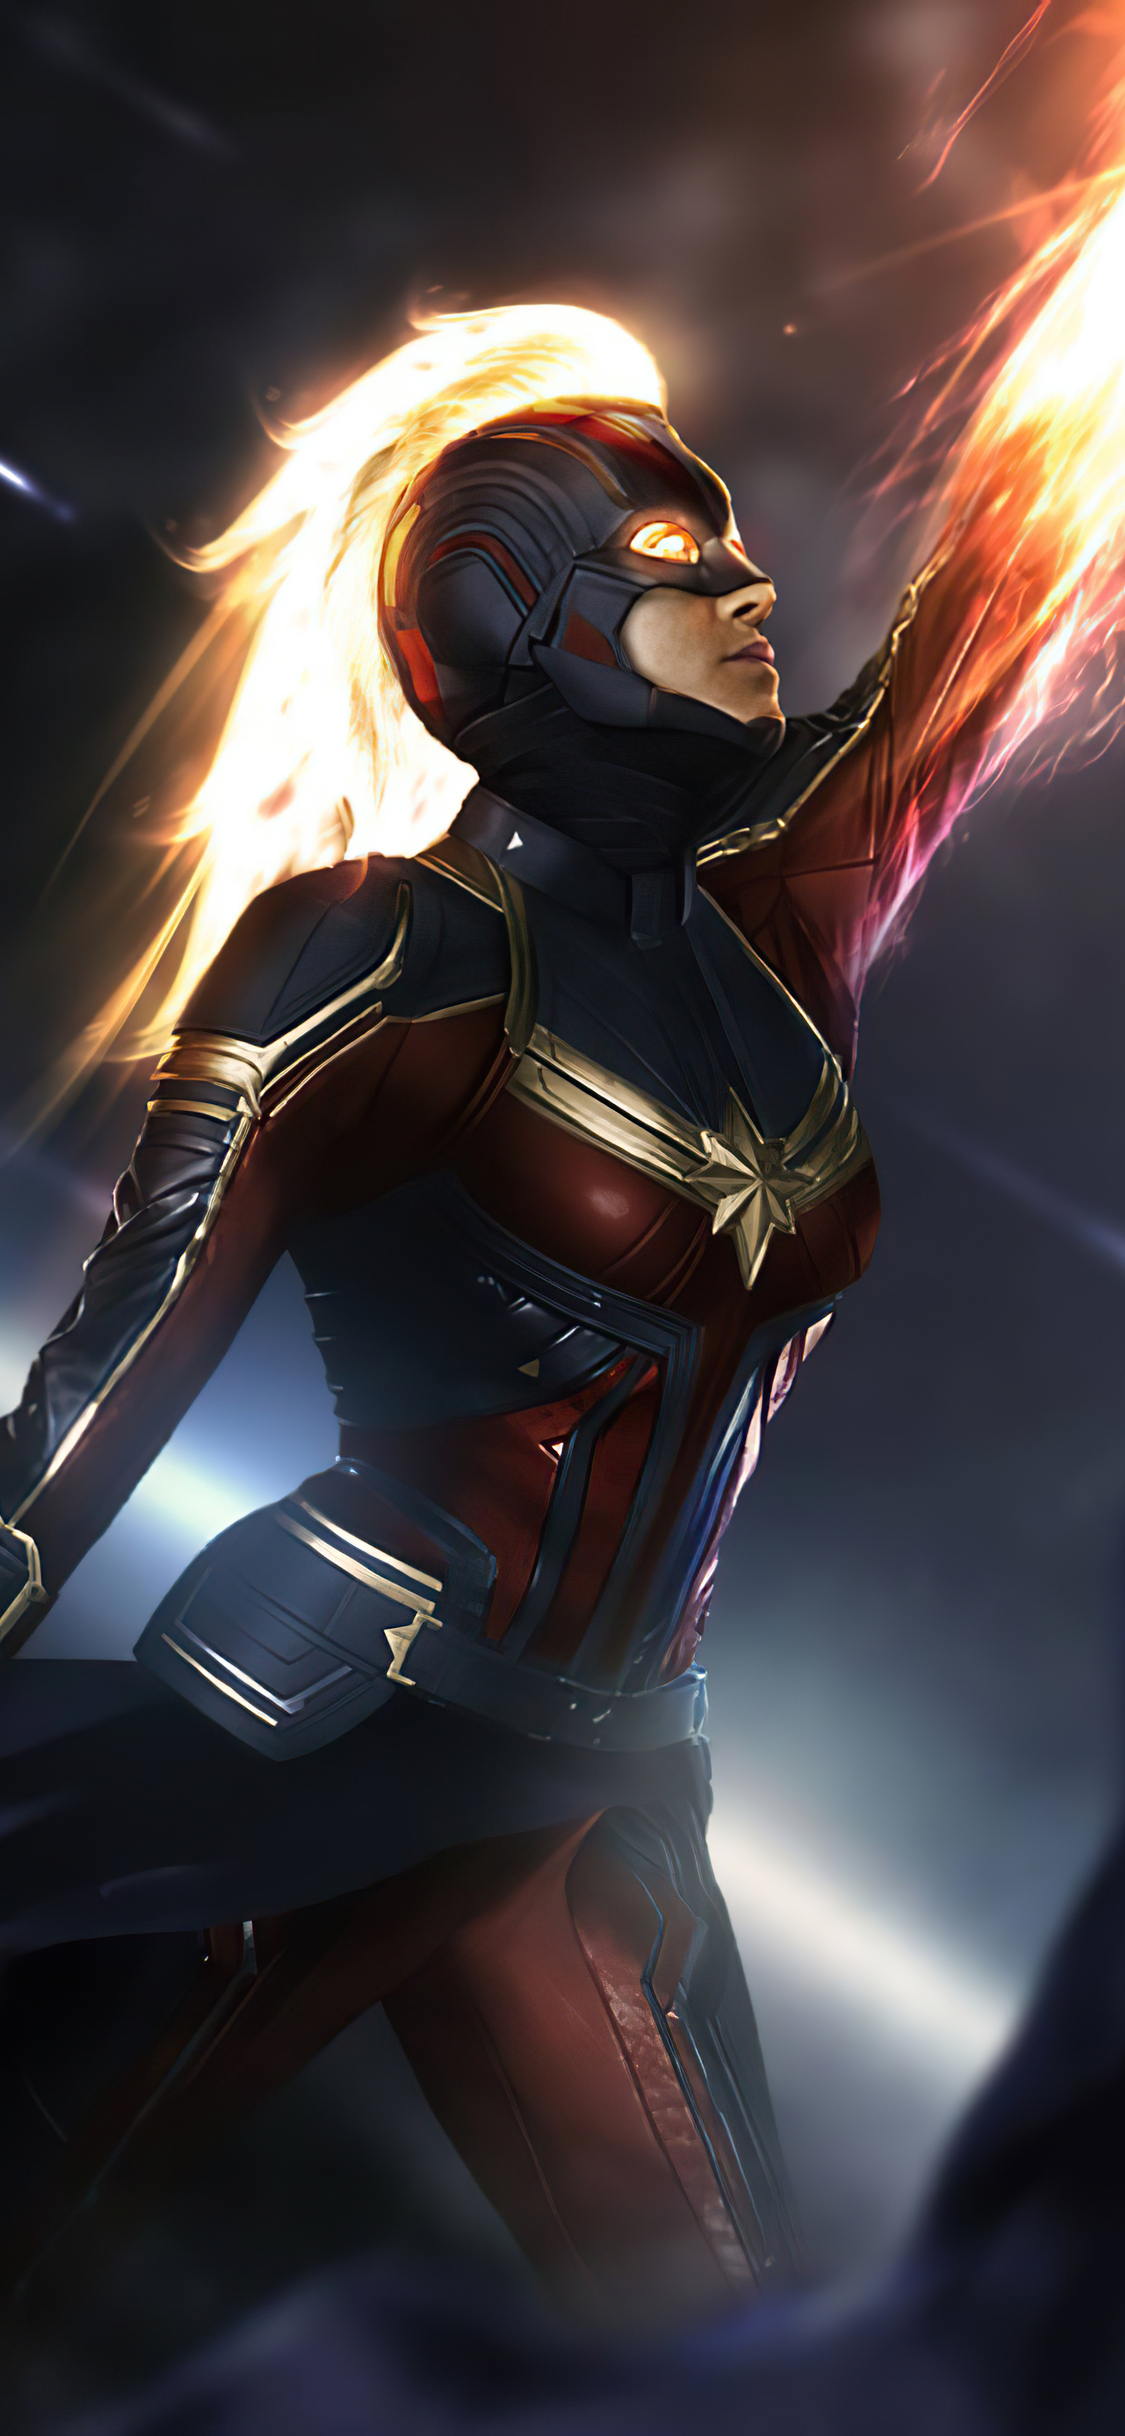 1125x2436 Captain Marvel Fire 4k Iphone Xs Iphone 10 Iphone X Hd 4k Wallpapers Images Backgrounds Photos And Pictures